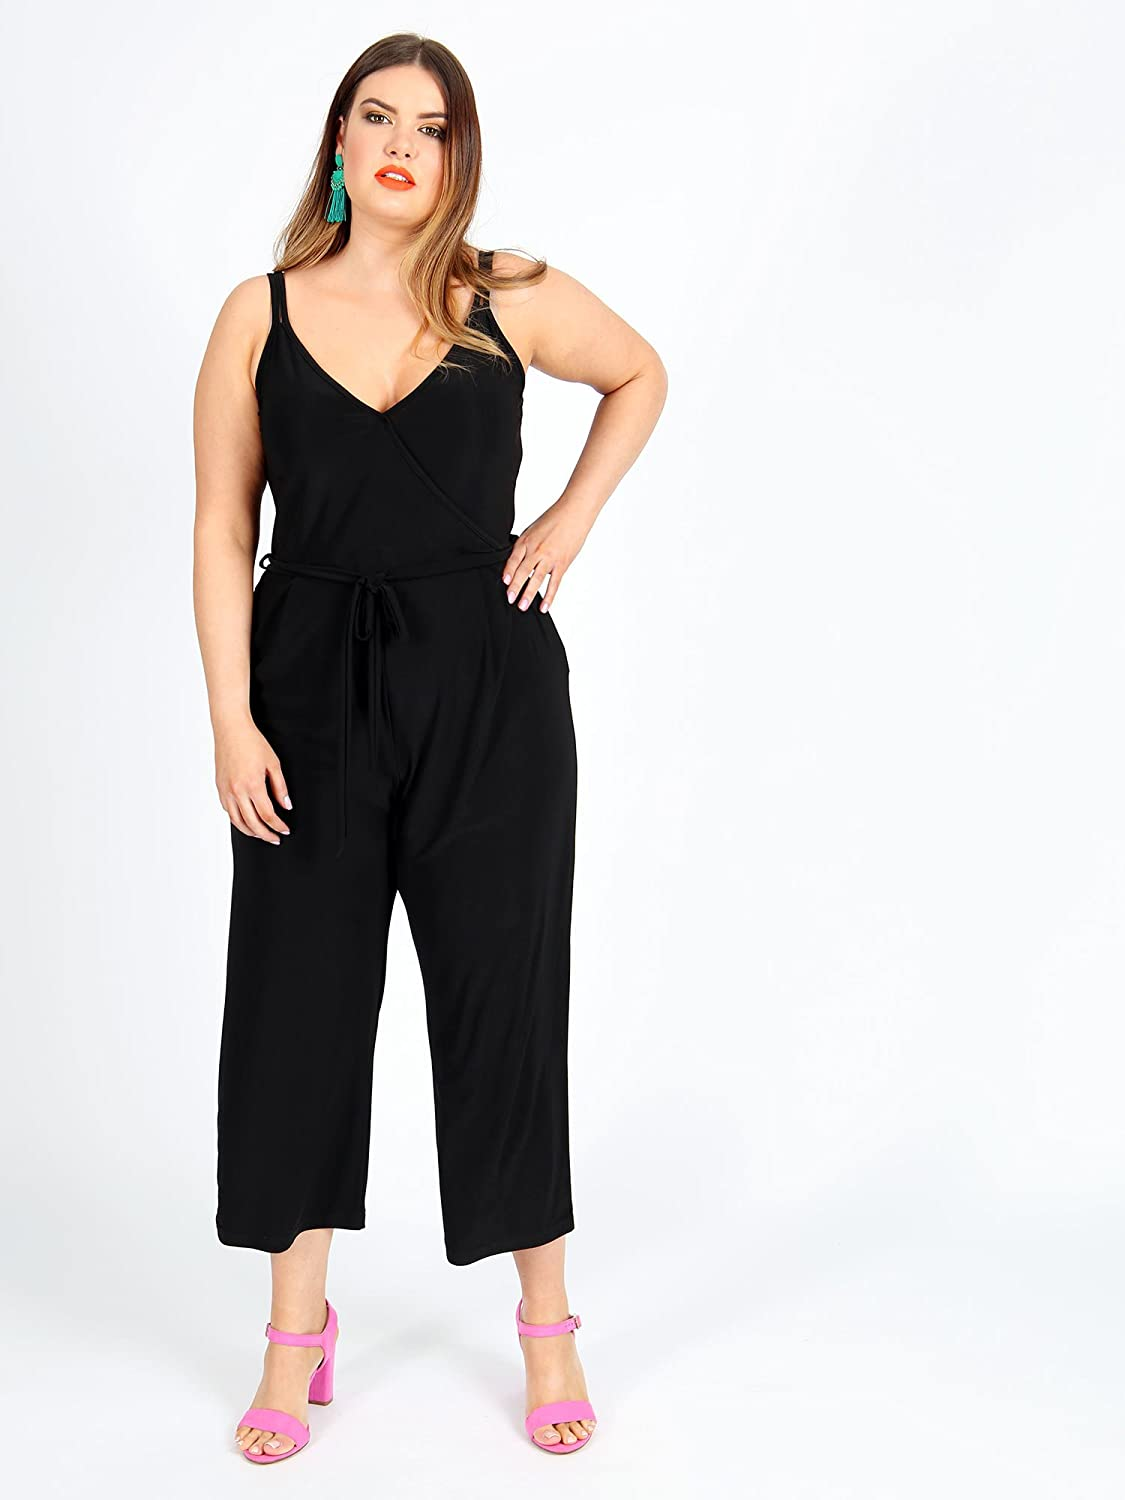 b57f2254141 Lovedrobe Koko Women s Plus Size Black Wrap Spaghetti Strap Jumpsuit (16)   Amazon.co.uk  Clothing